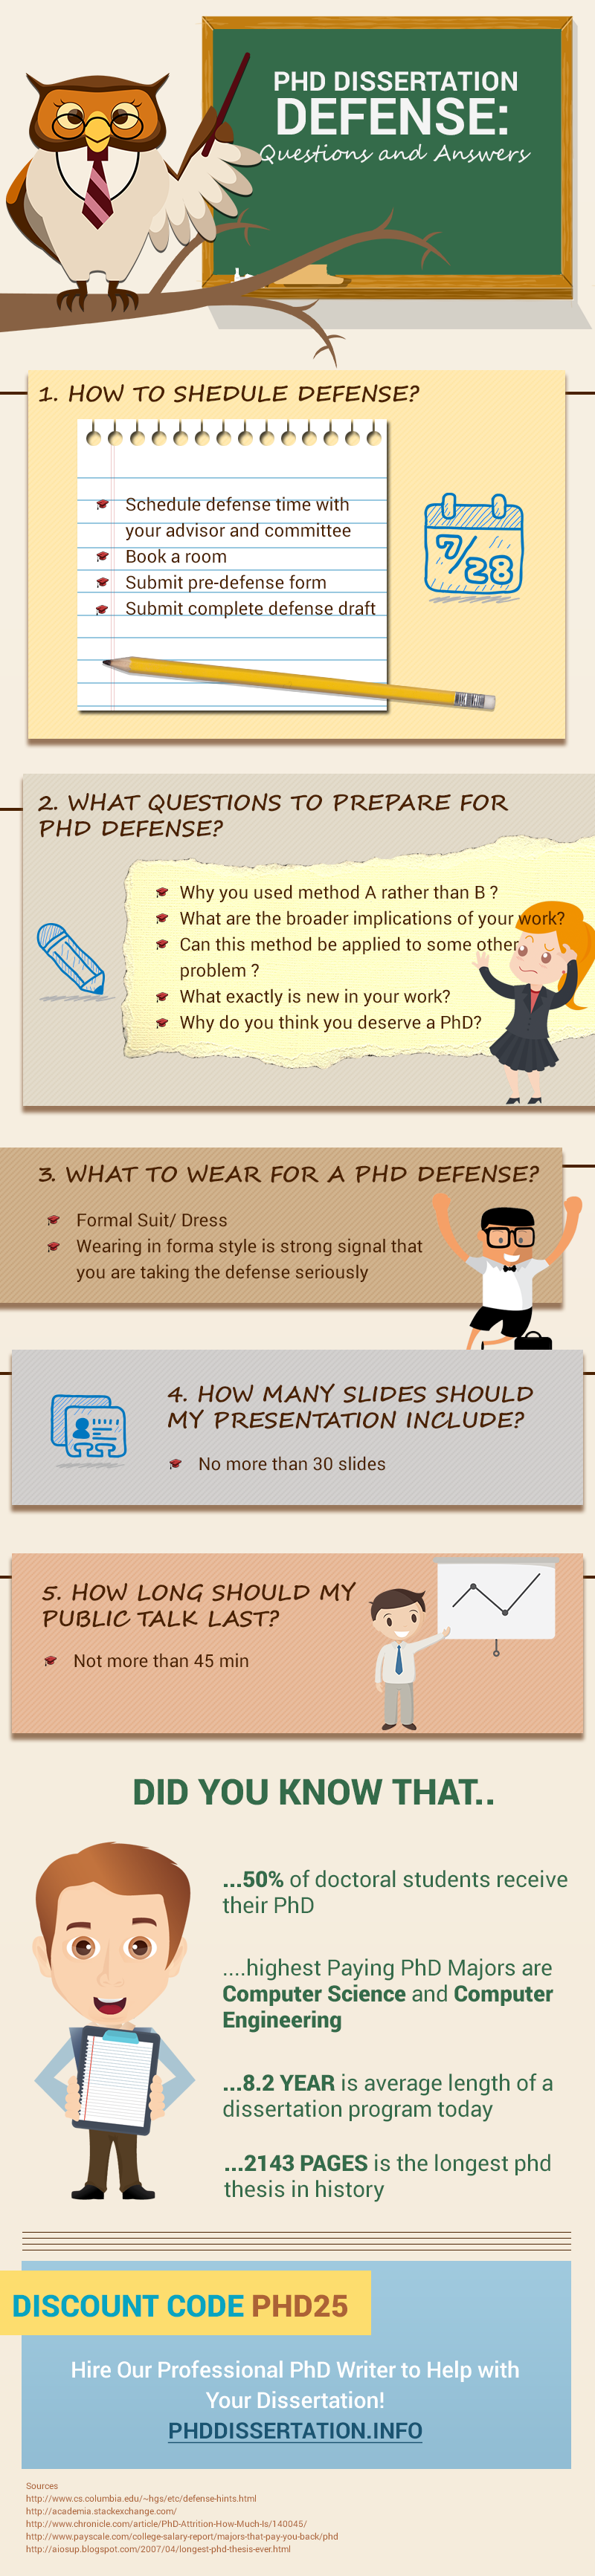 Online doctorate no dissertation